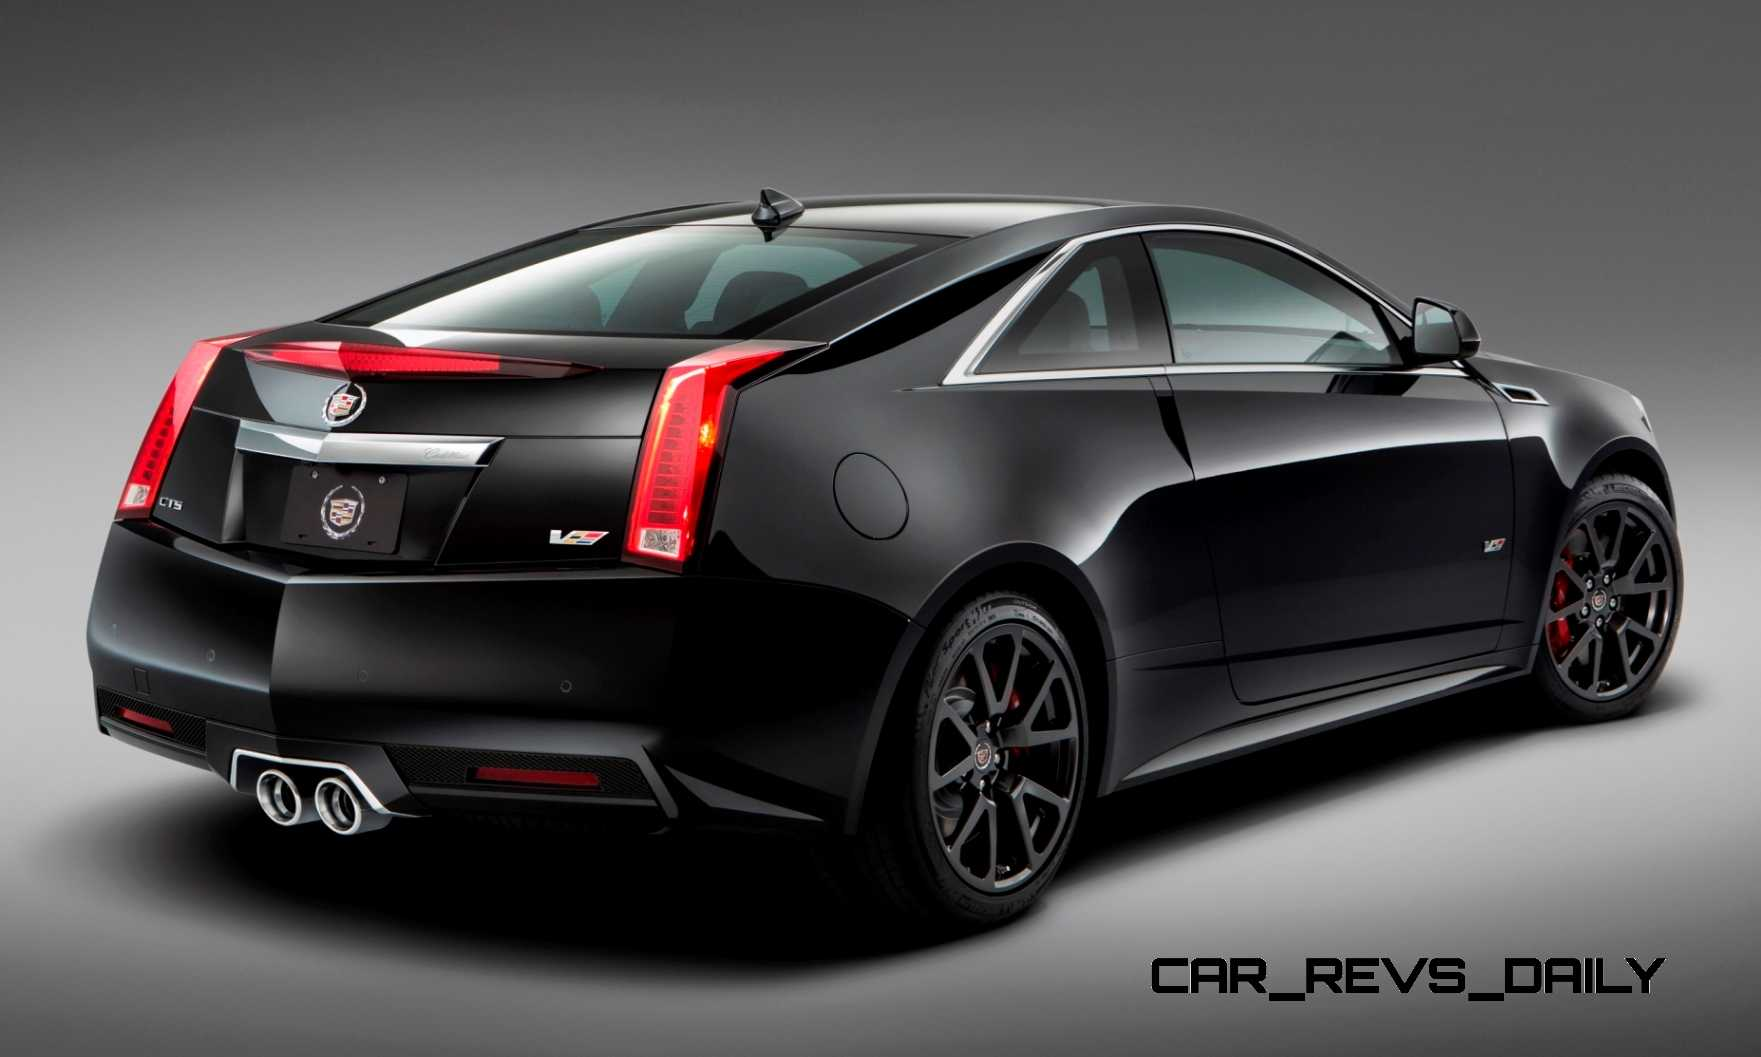 2012 Cadillac Cts V With Satin White Wrap By Camshaft